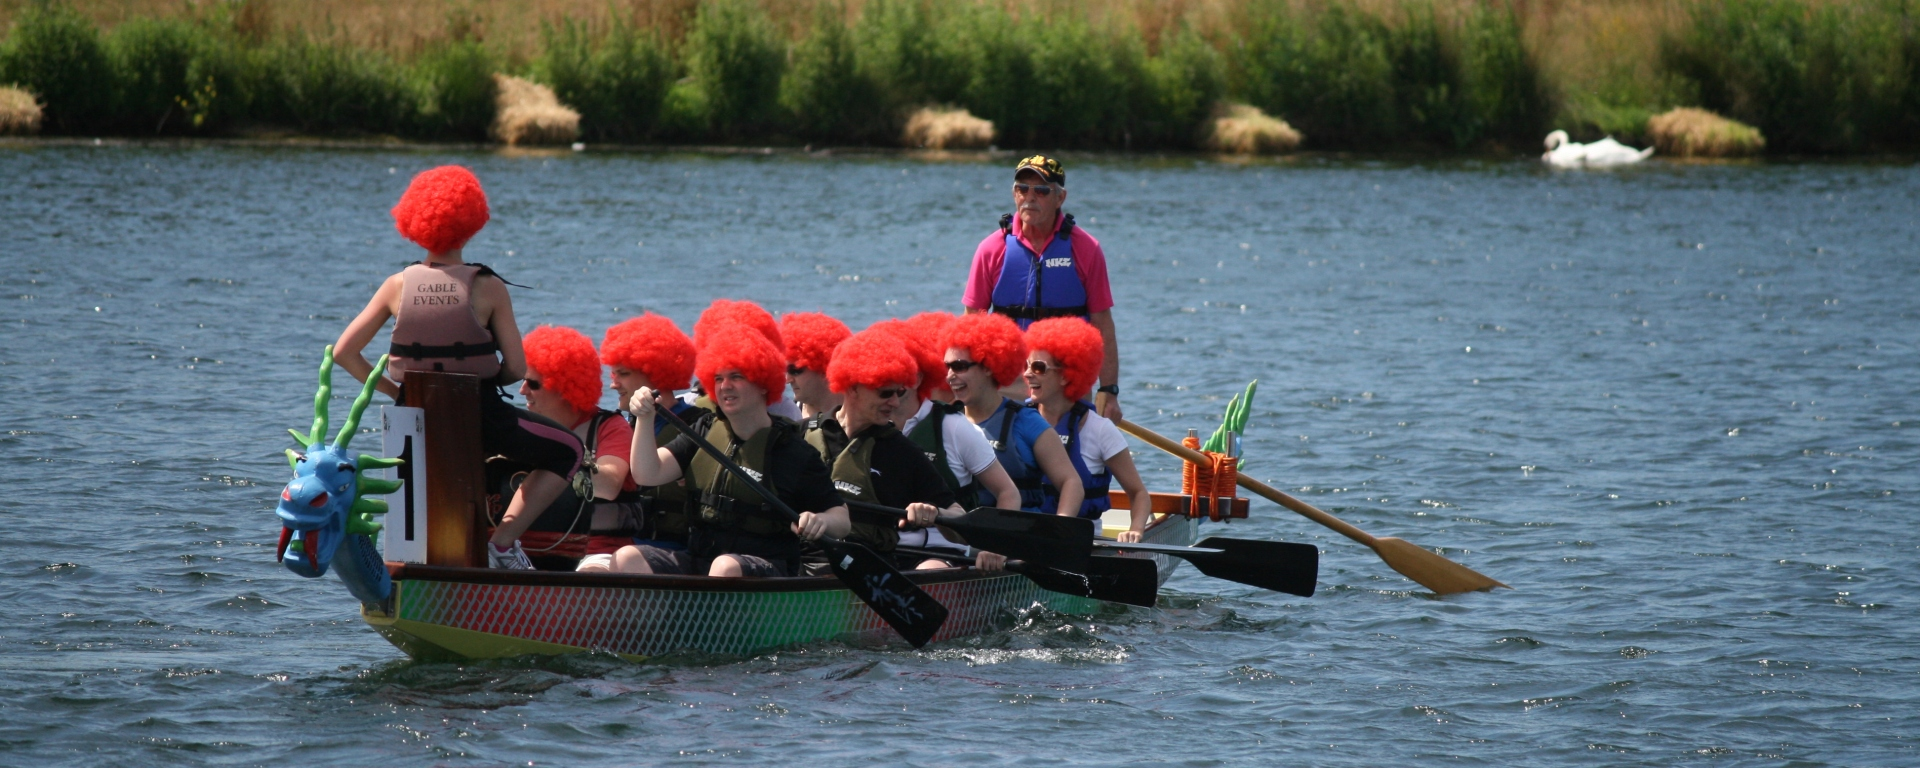 dragon boat dorney lake 4